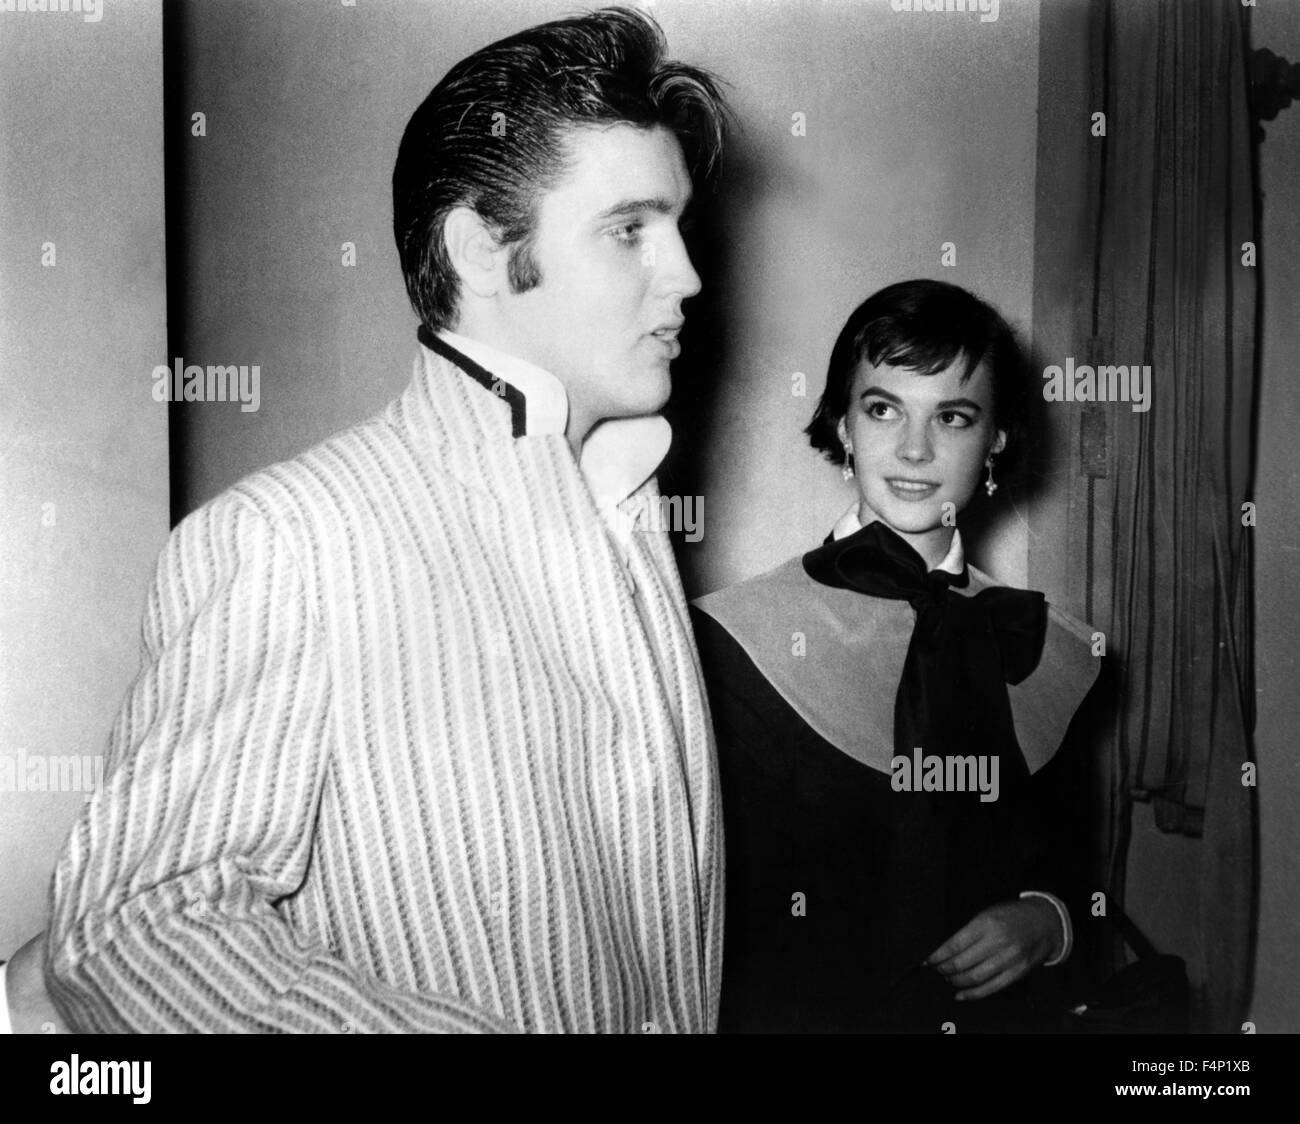 Elvis Presley in 1956 - Stock Image